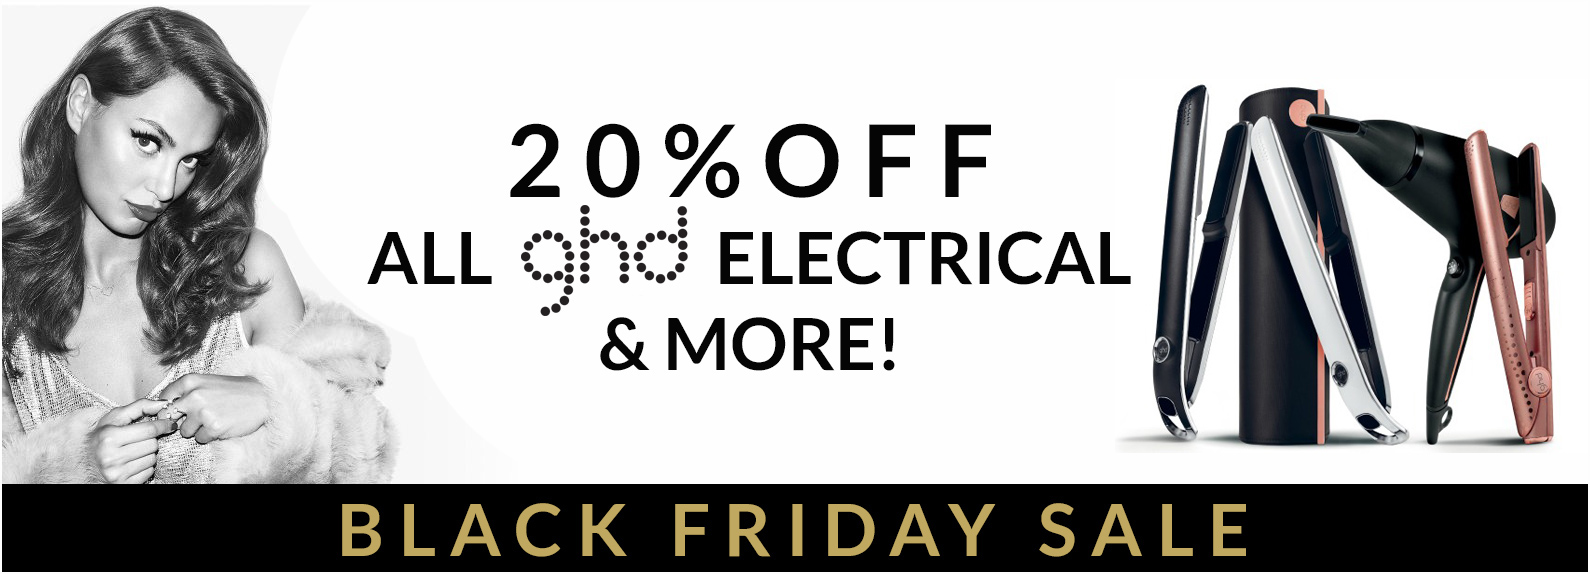 black-friday-sale-20-off-all-ghd-electrical-more